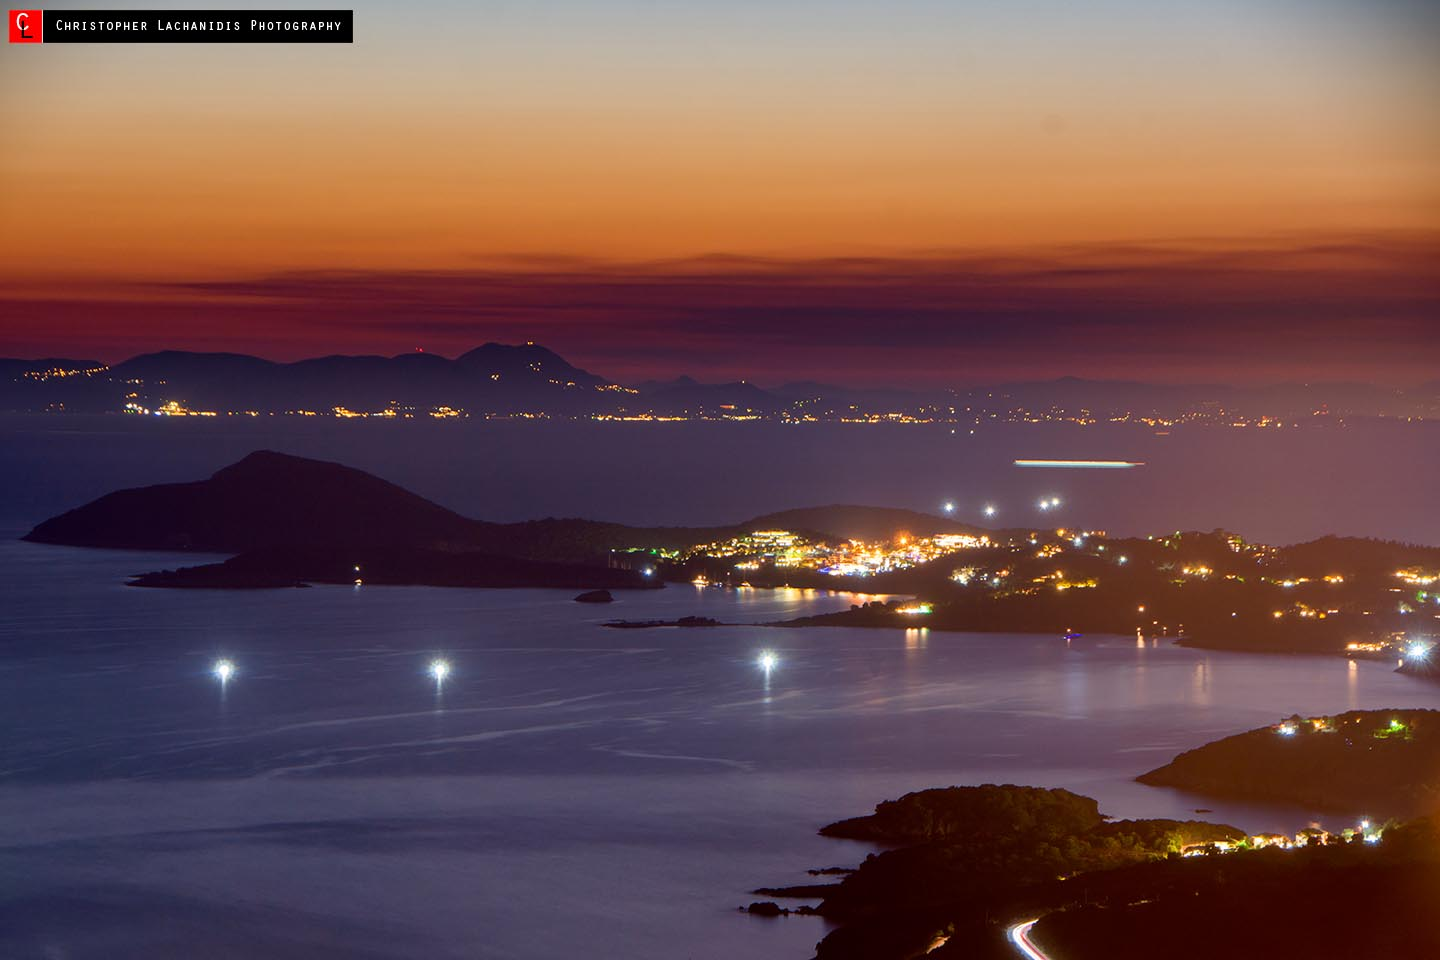 Shortly after sunset at Paratiritirio site overlooking Sivota and Corfu!